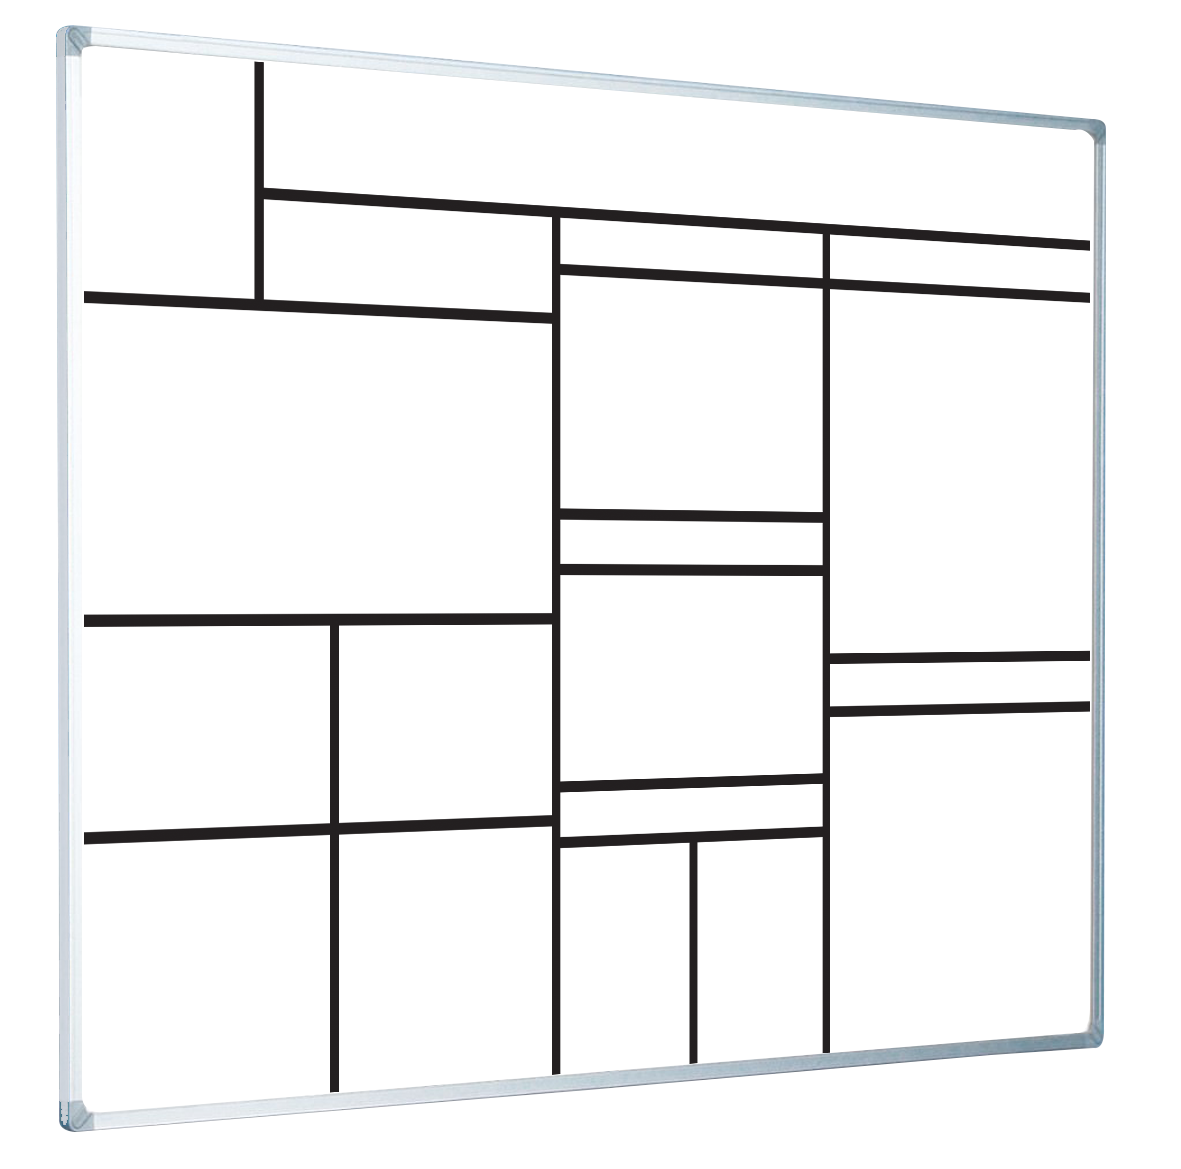 How to create lines on a whiteboard